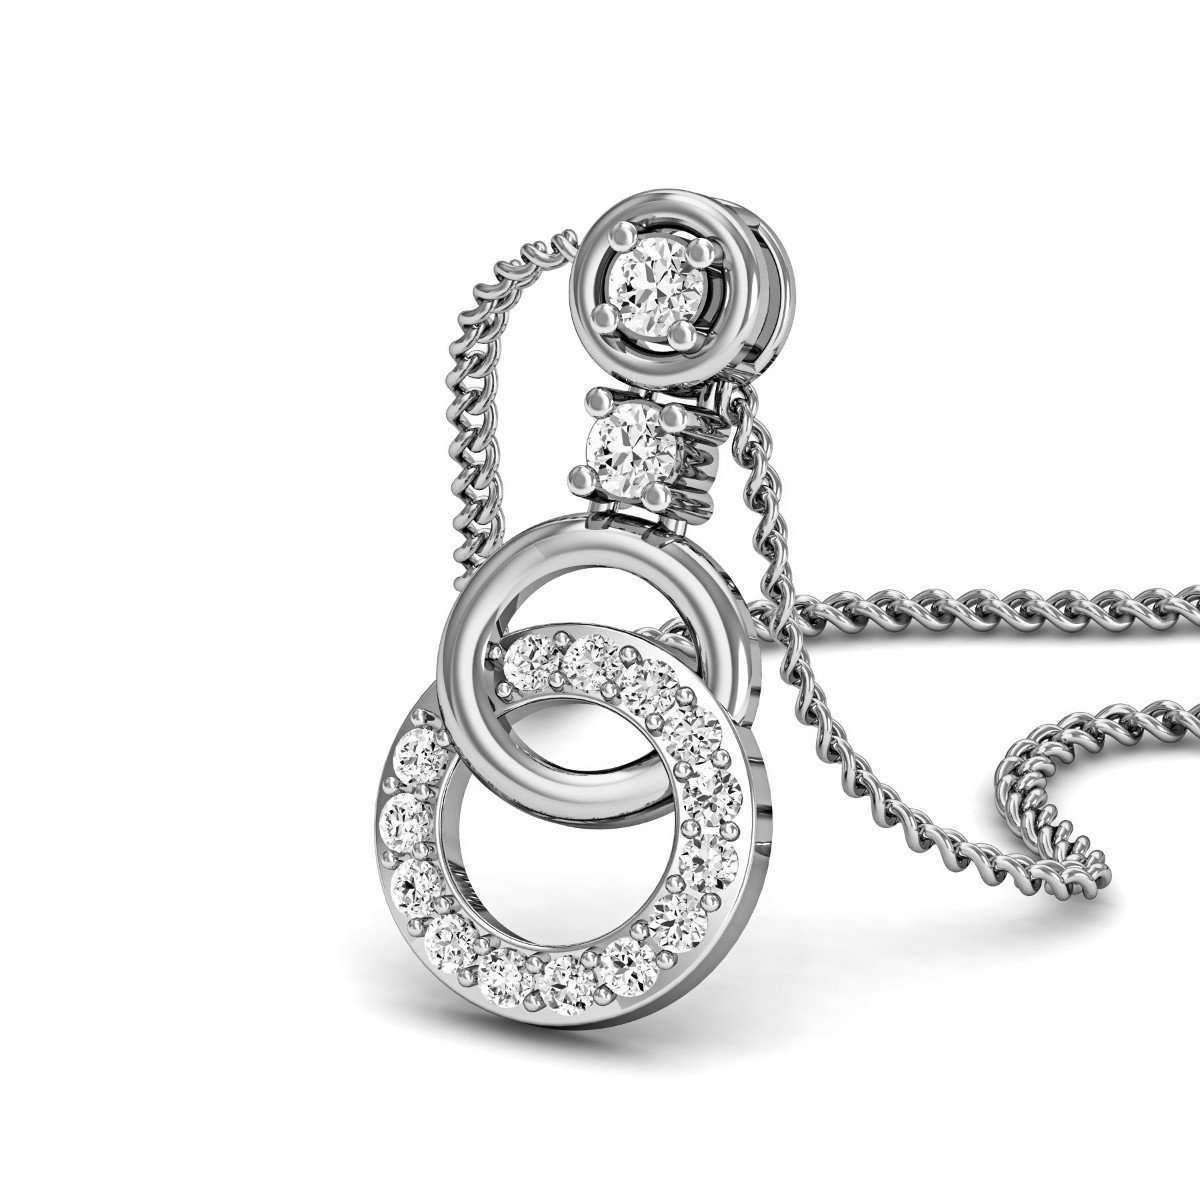 Diamoire Jewels Neatly Carved White Gold and Diamond Pendant Eqzii8B